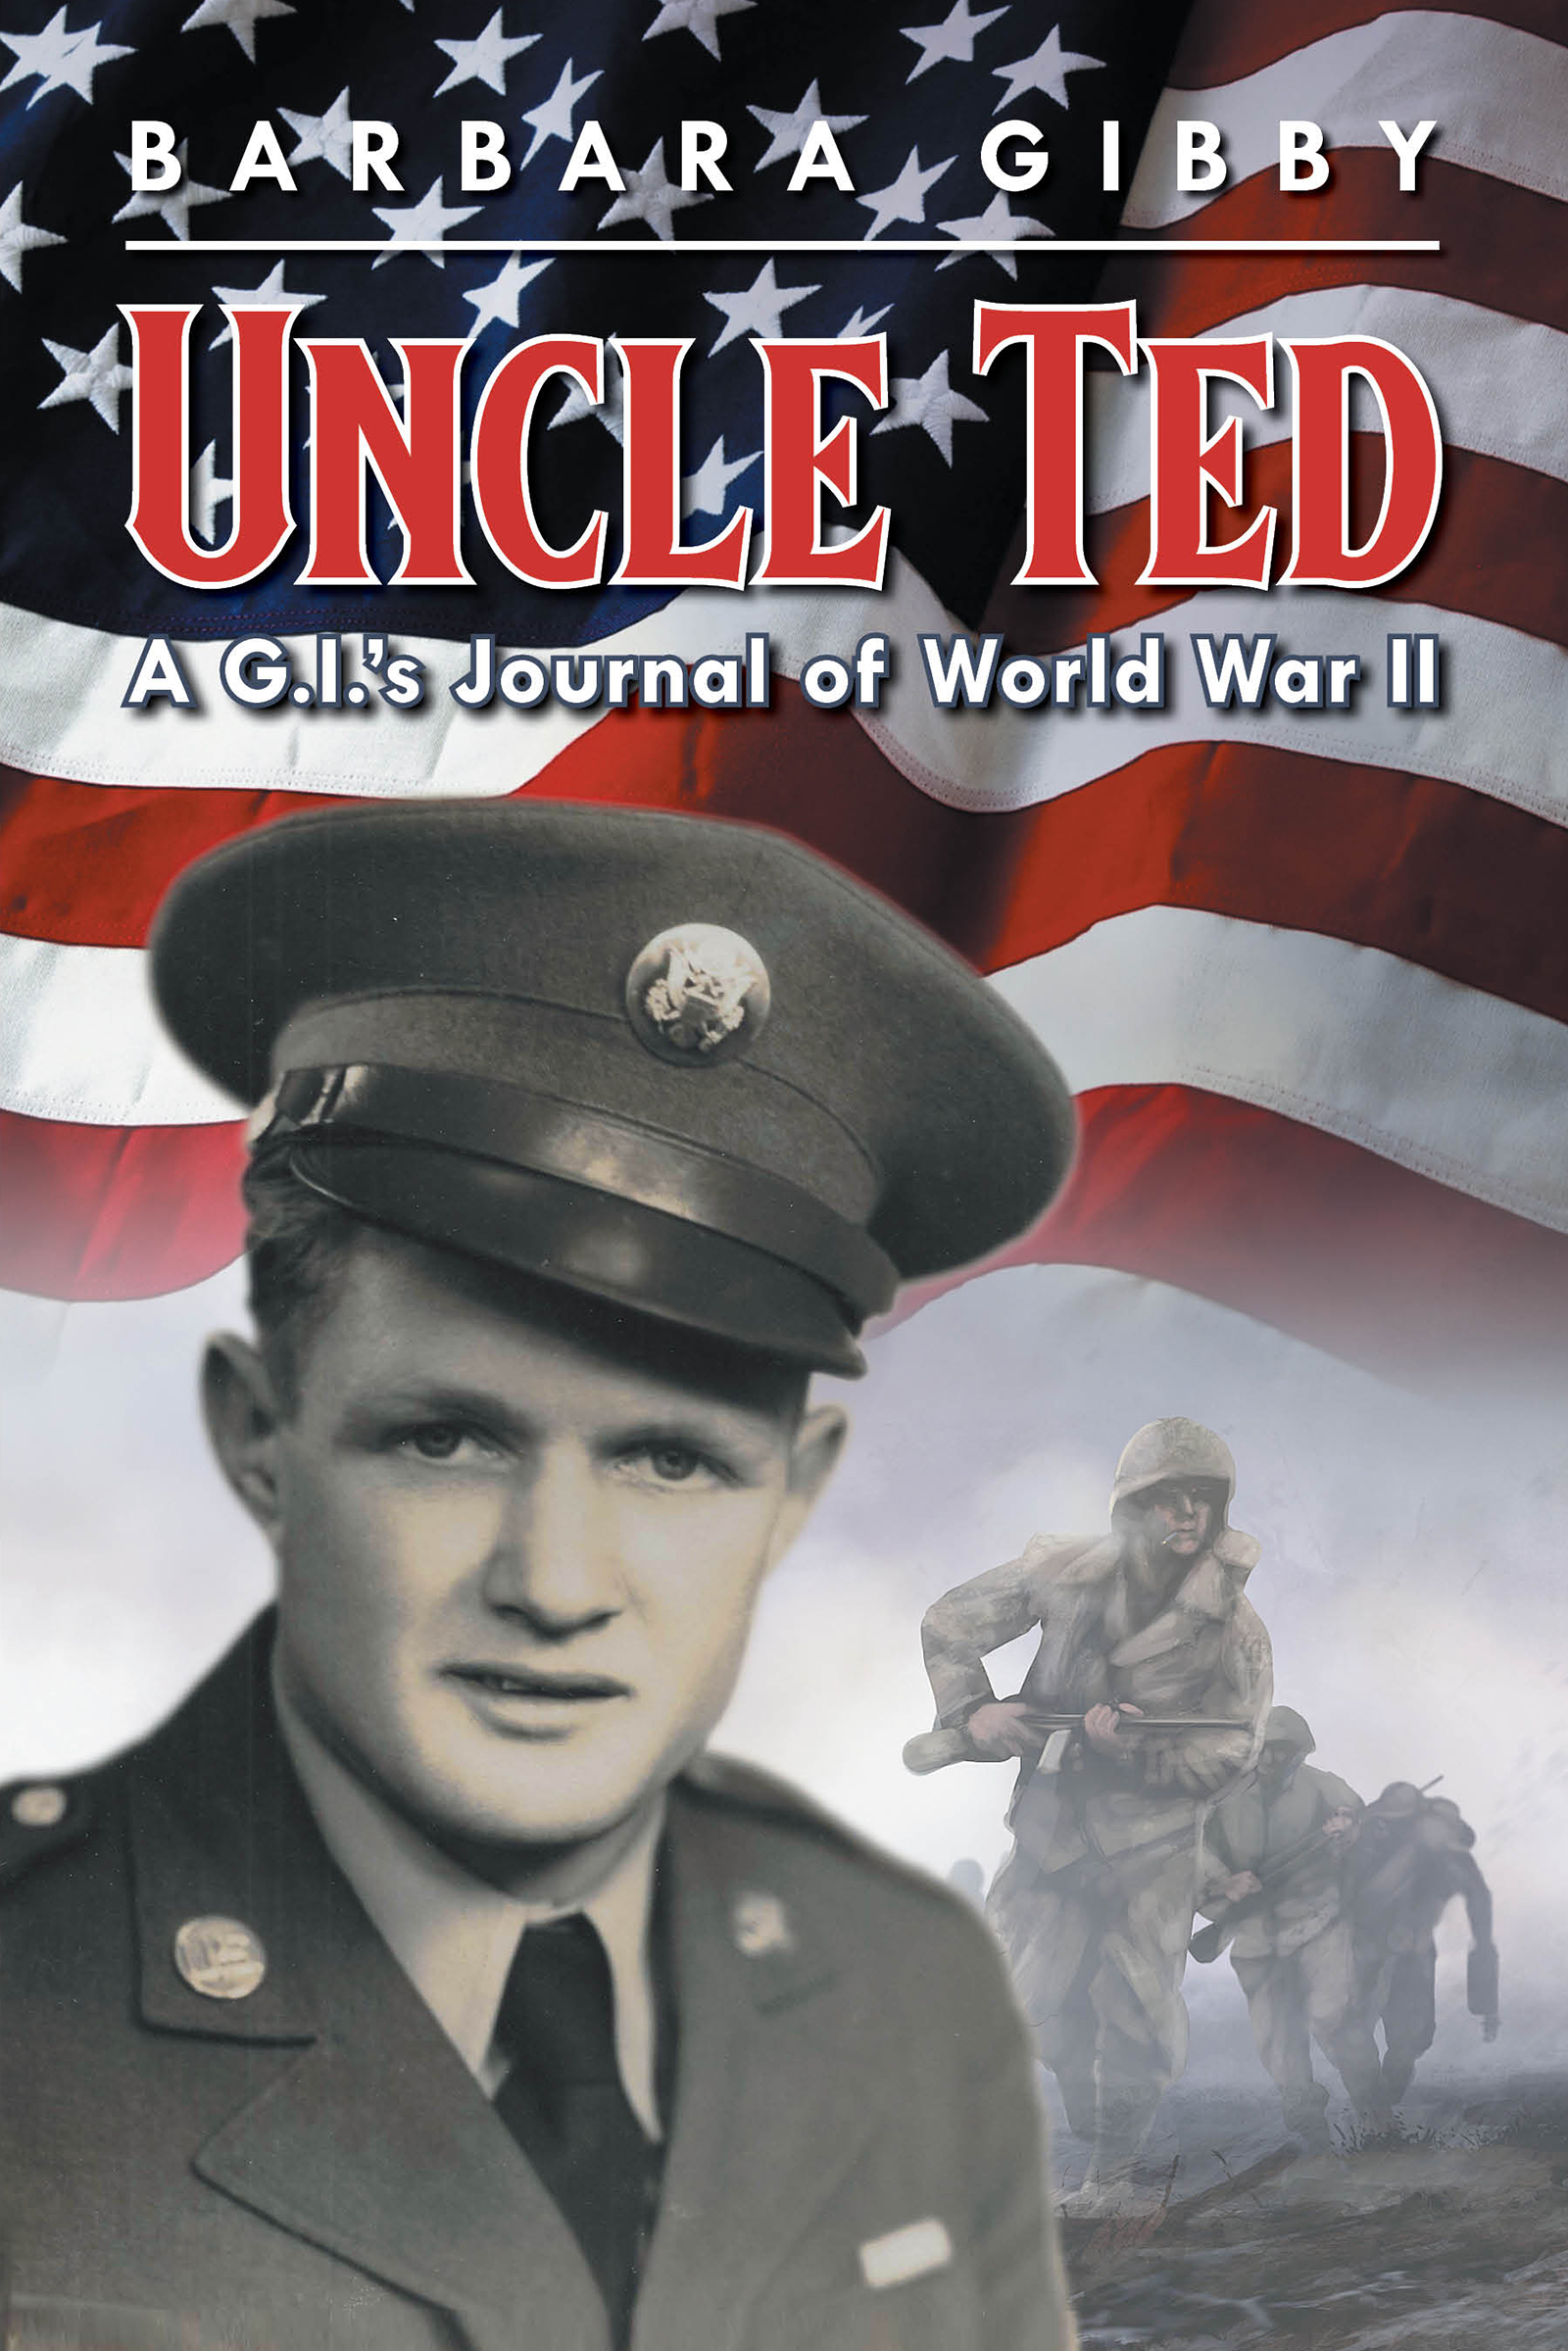 A book about an unsung hero of the WW-II and its aftermath